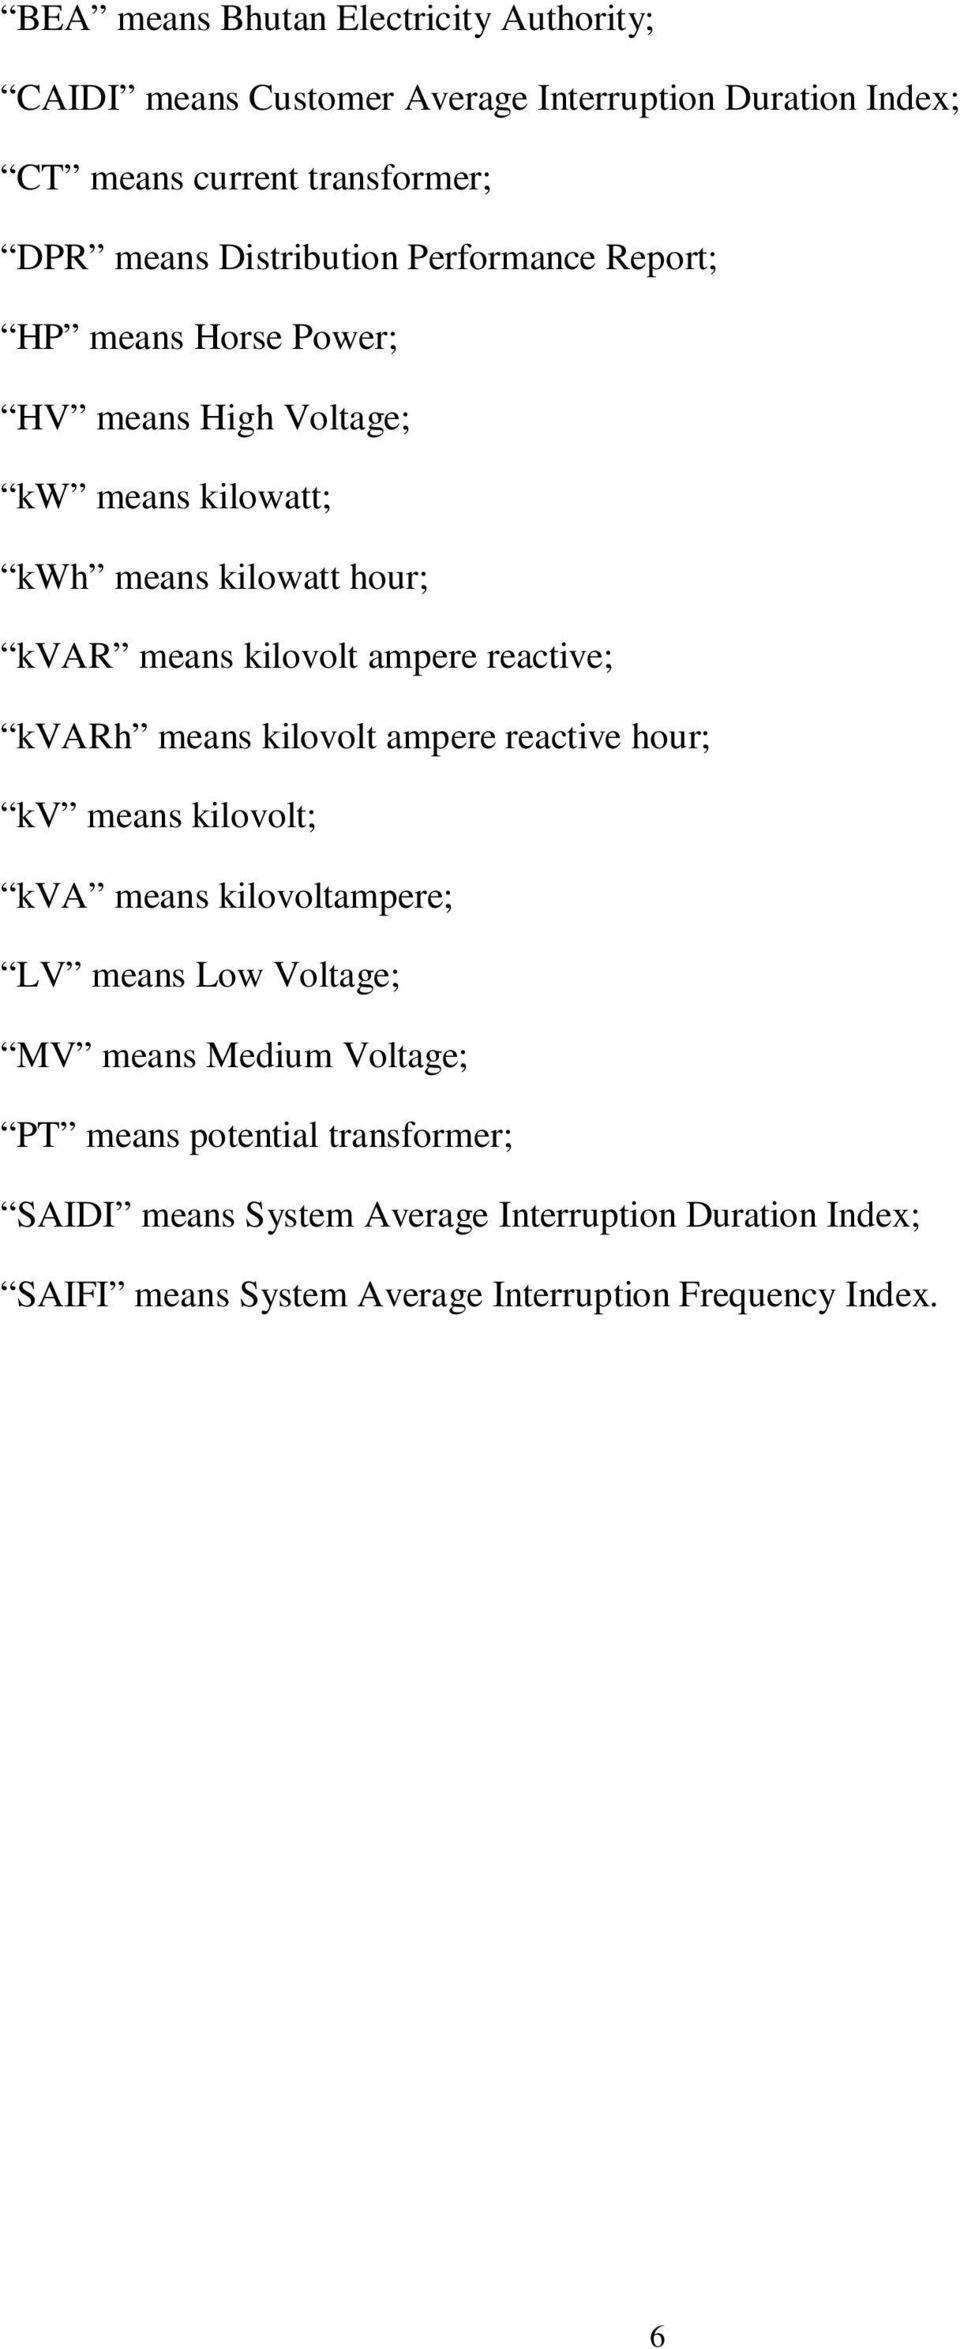 ampere reactive; kvarh means kilovolt ampere reactive hour; kv means kilovolt; kva means kilovoltampere; LV means Low Voltage; MV means Medium